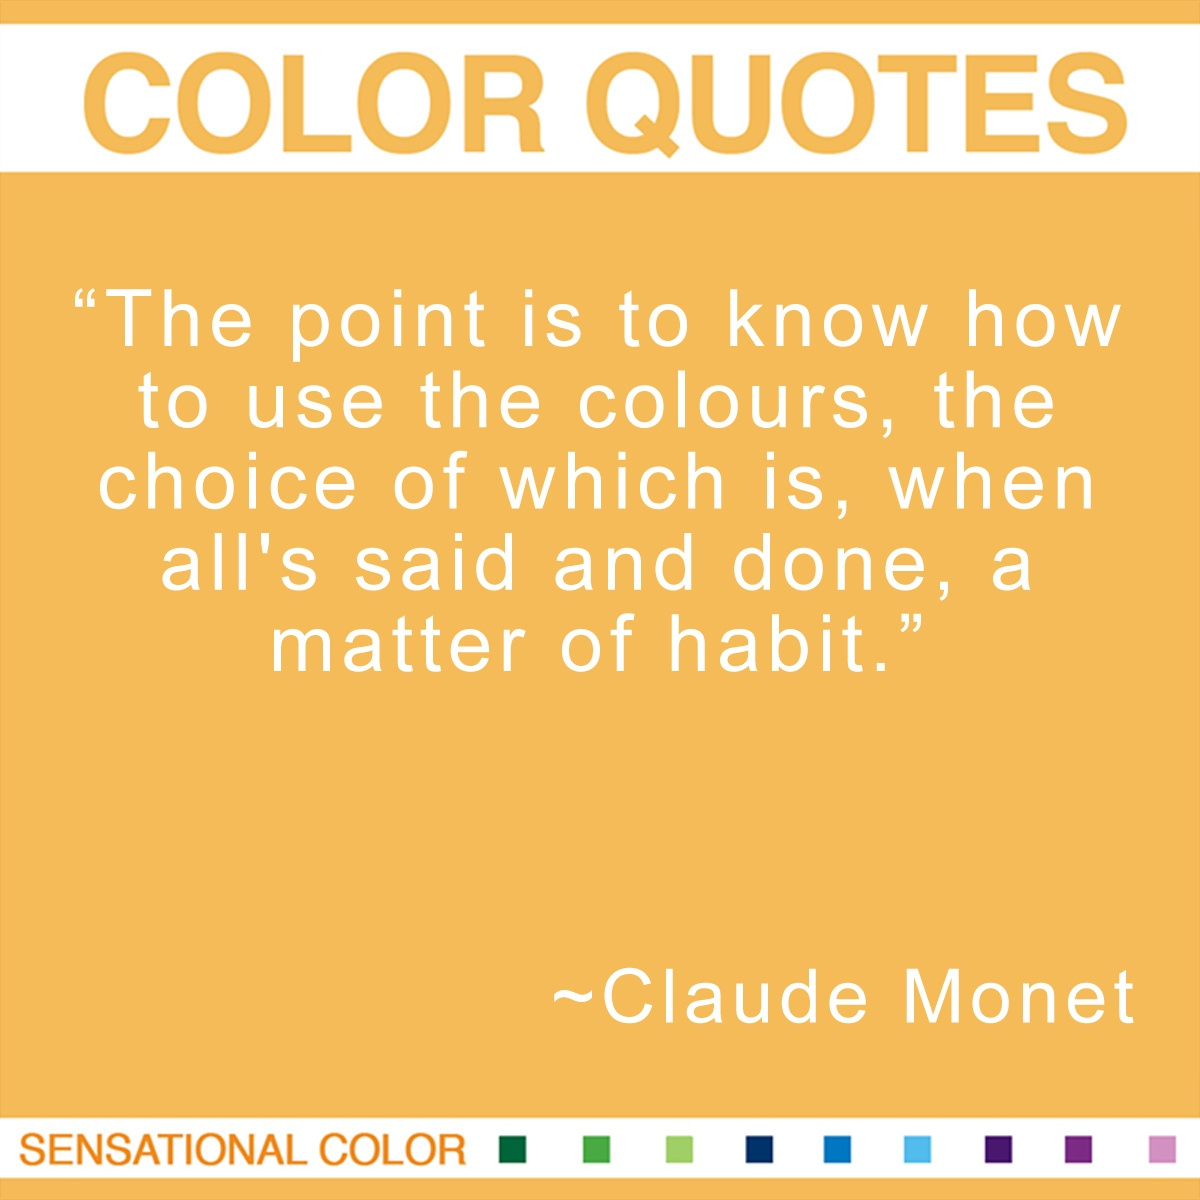 """The point is to know how to use the colors, the choice of which is,when all's said and done, a matter of habit.""  - Claude Monet"